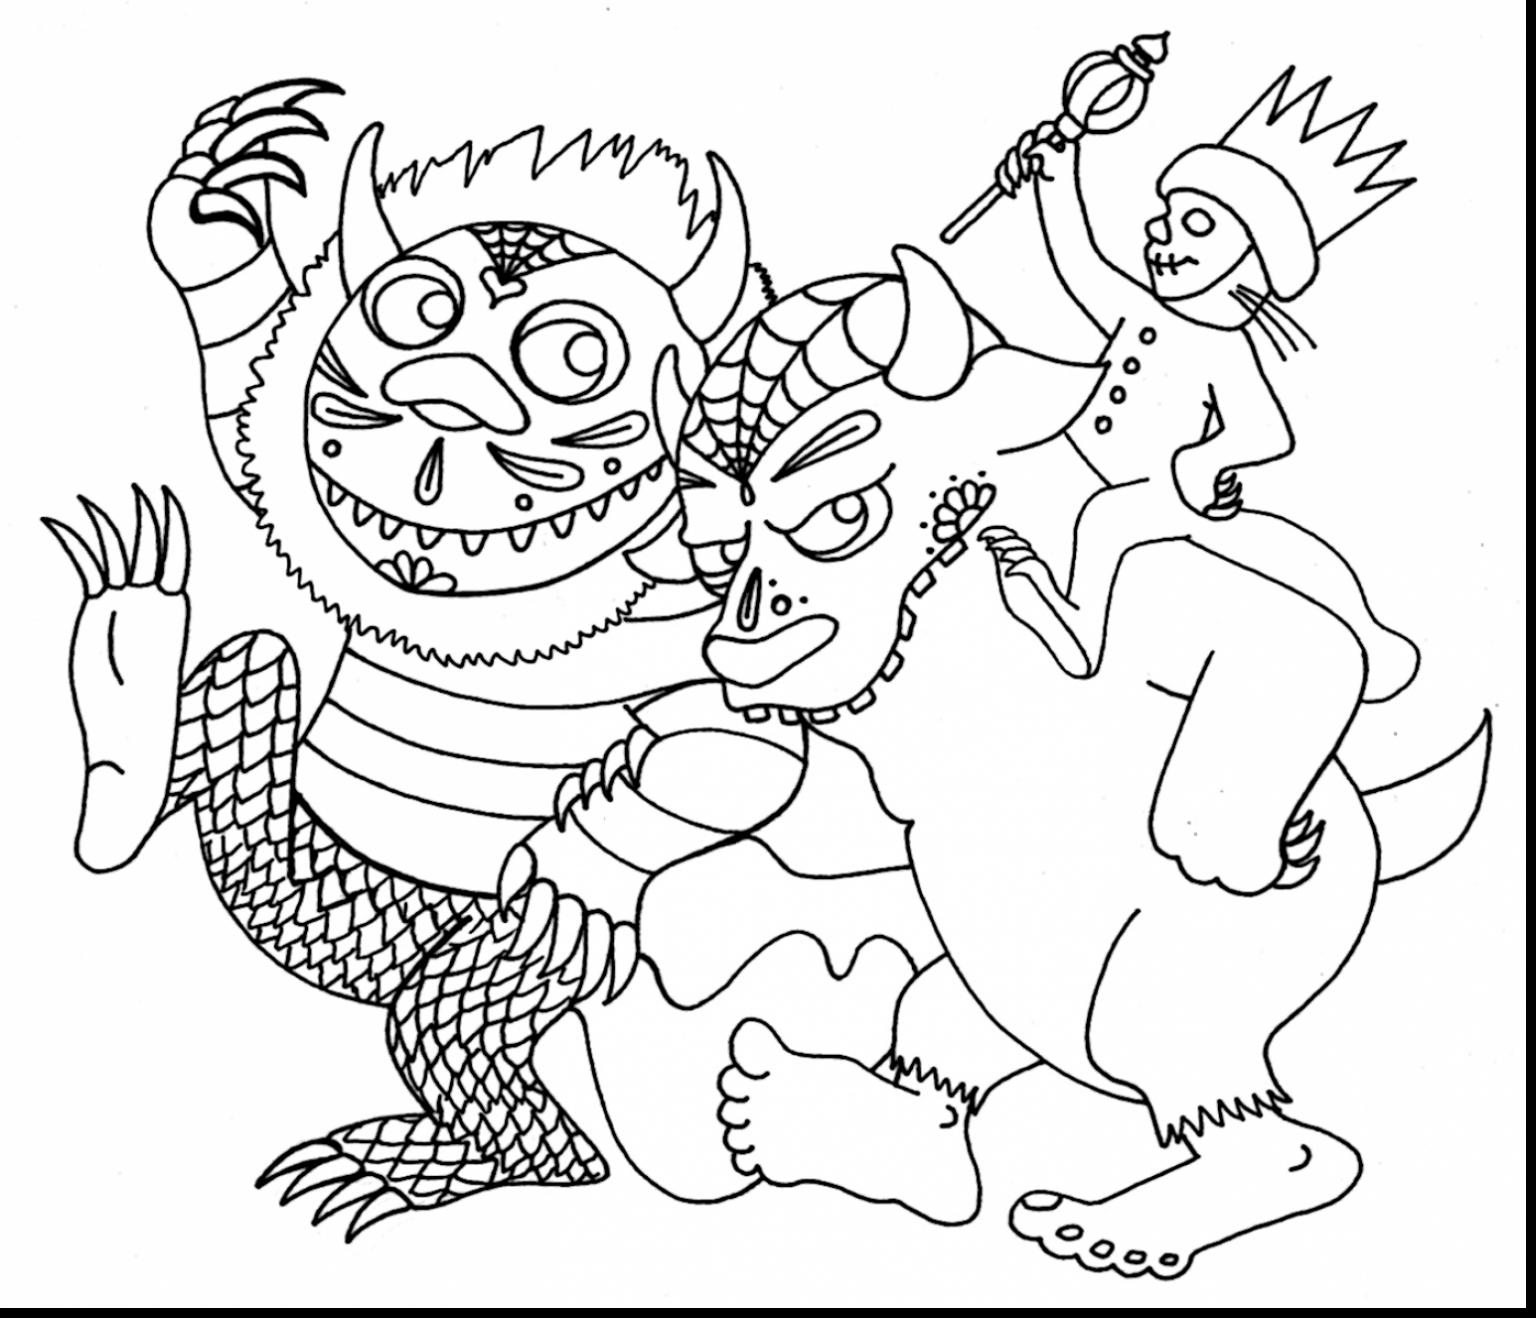 1536x1318 Remarkable Missouri State Worksheet With Where The Wild Things Are